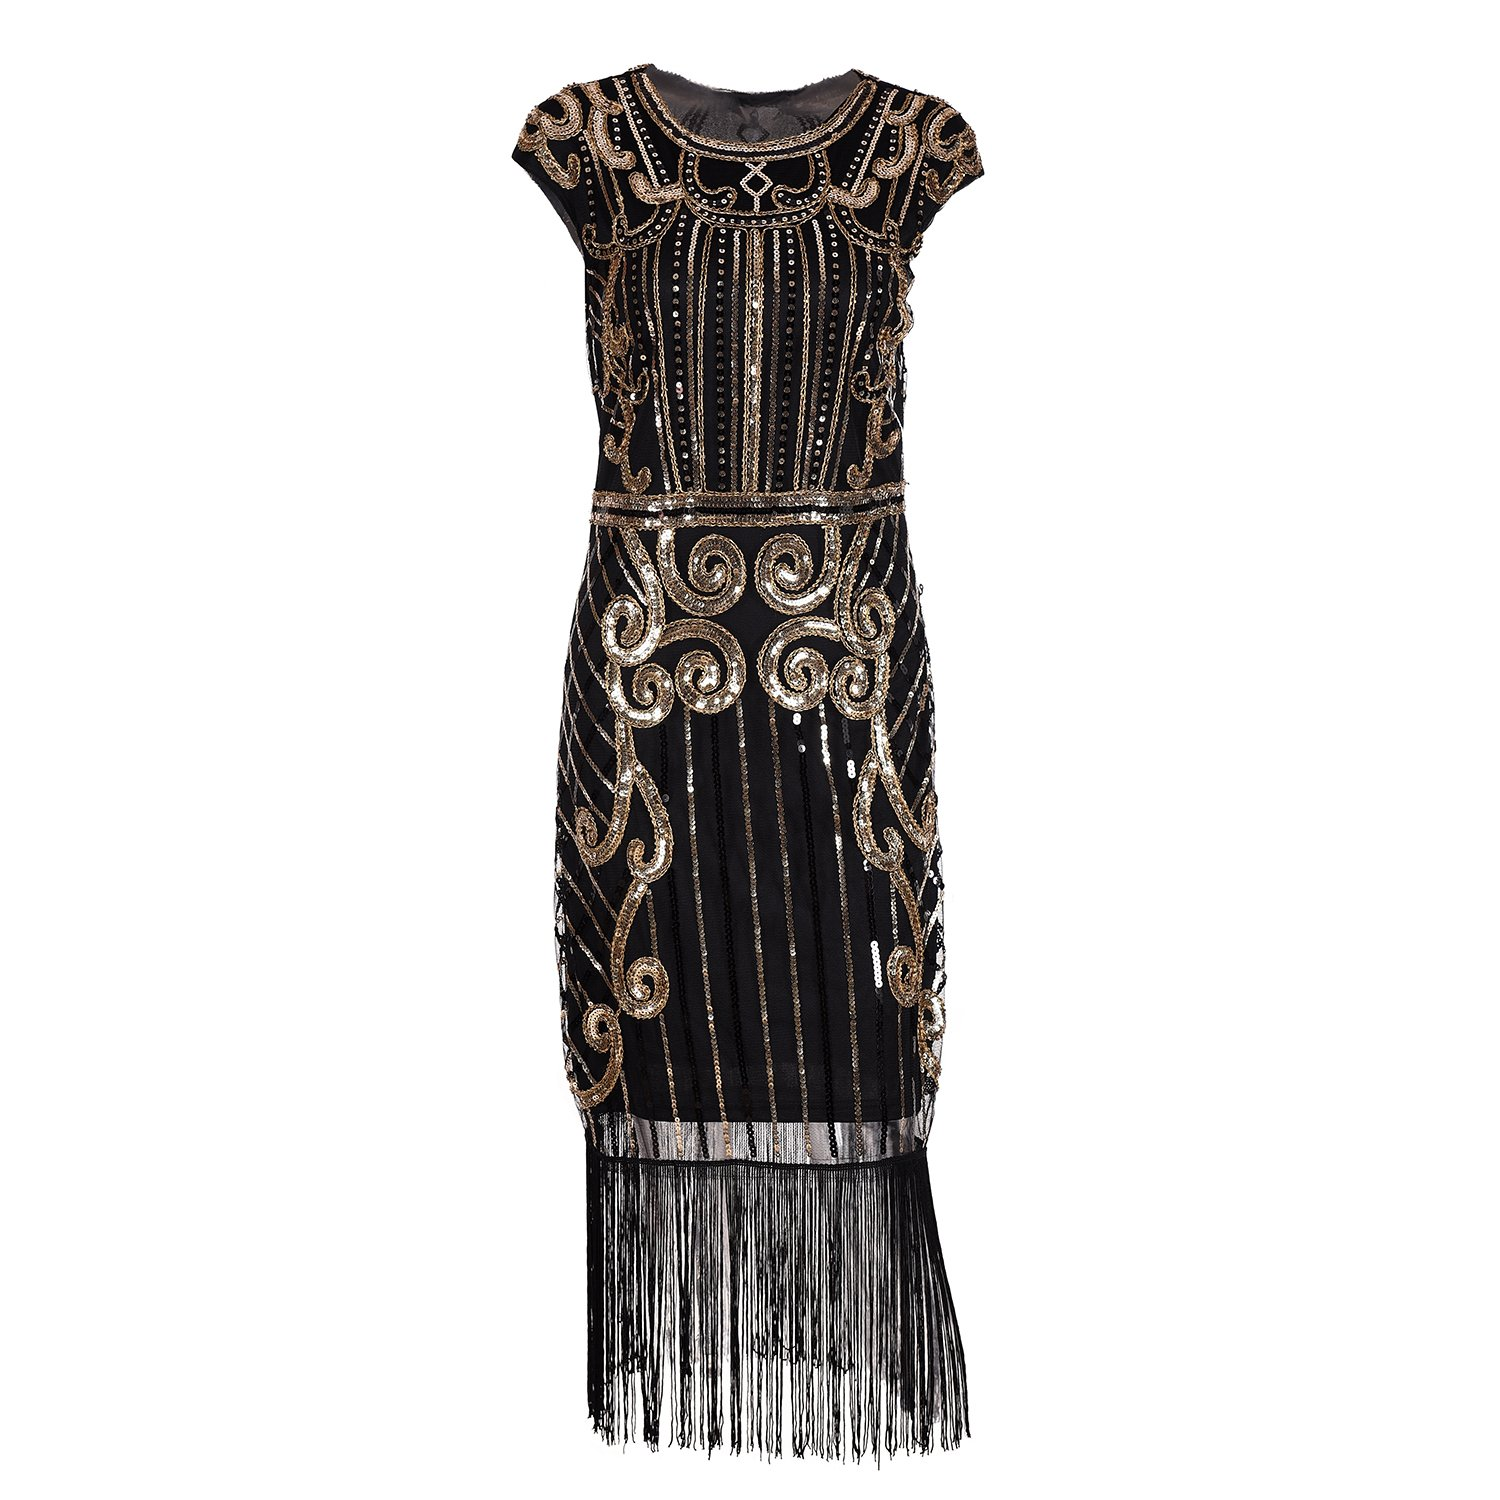 IMAGICSUN Sequin Cape Sleeve Beaded Dress - Fringe Hem Art Deco Dress